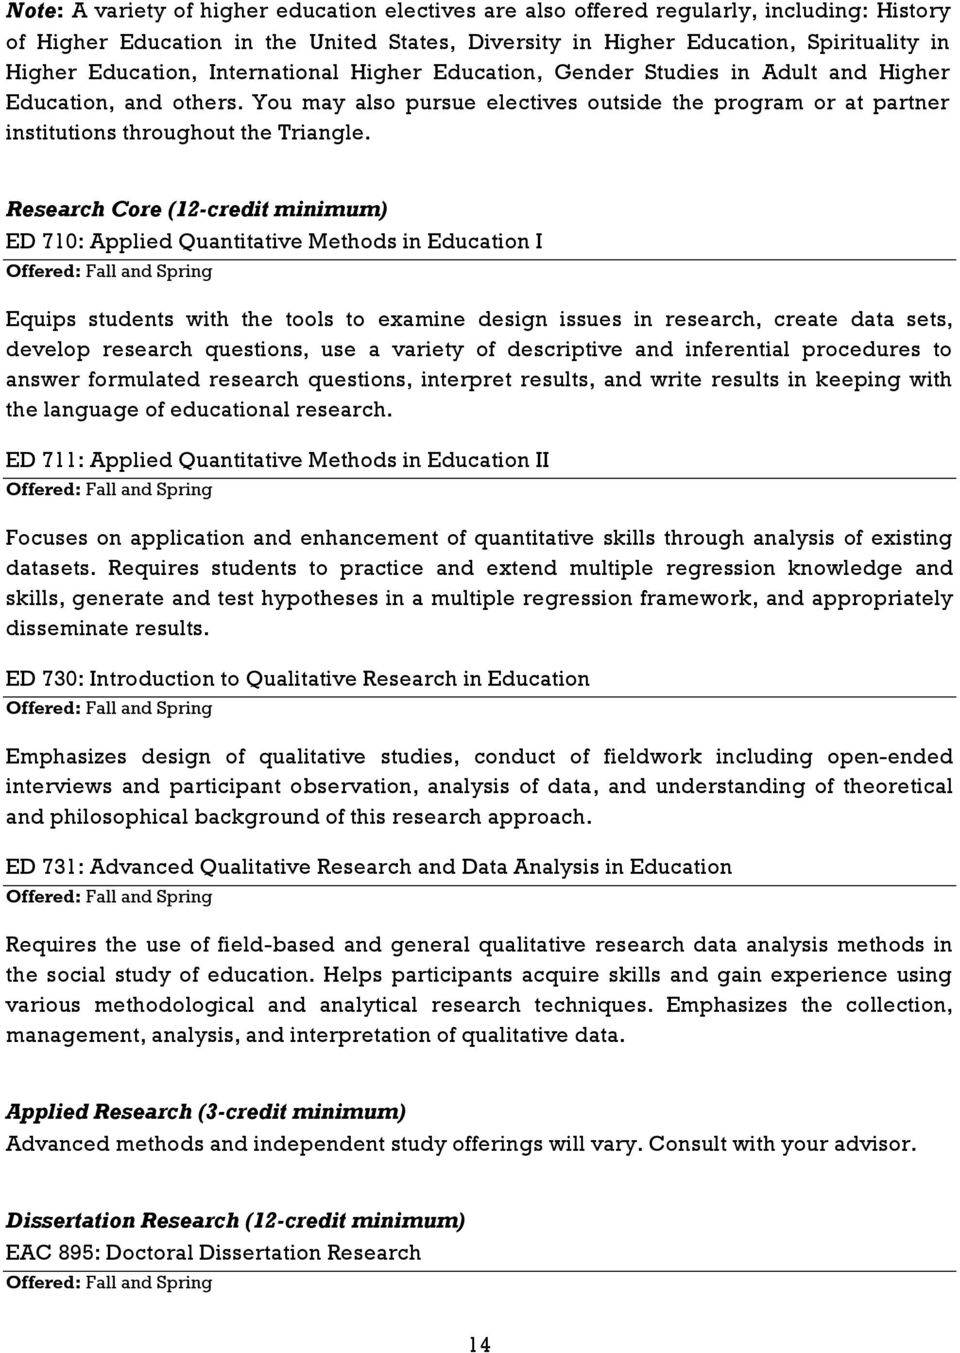 Research Core (12-credit minimum) ED 710: Applied Quantitative Methods in Education I Offered: Fall and Spring Equips students with the tools to examine design issues in research, create data sets,